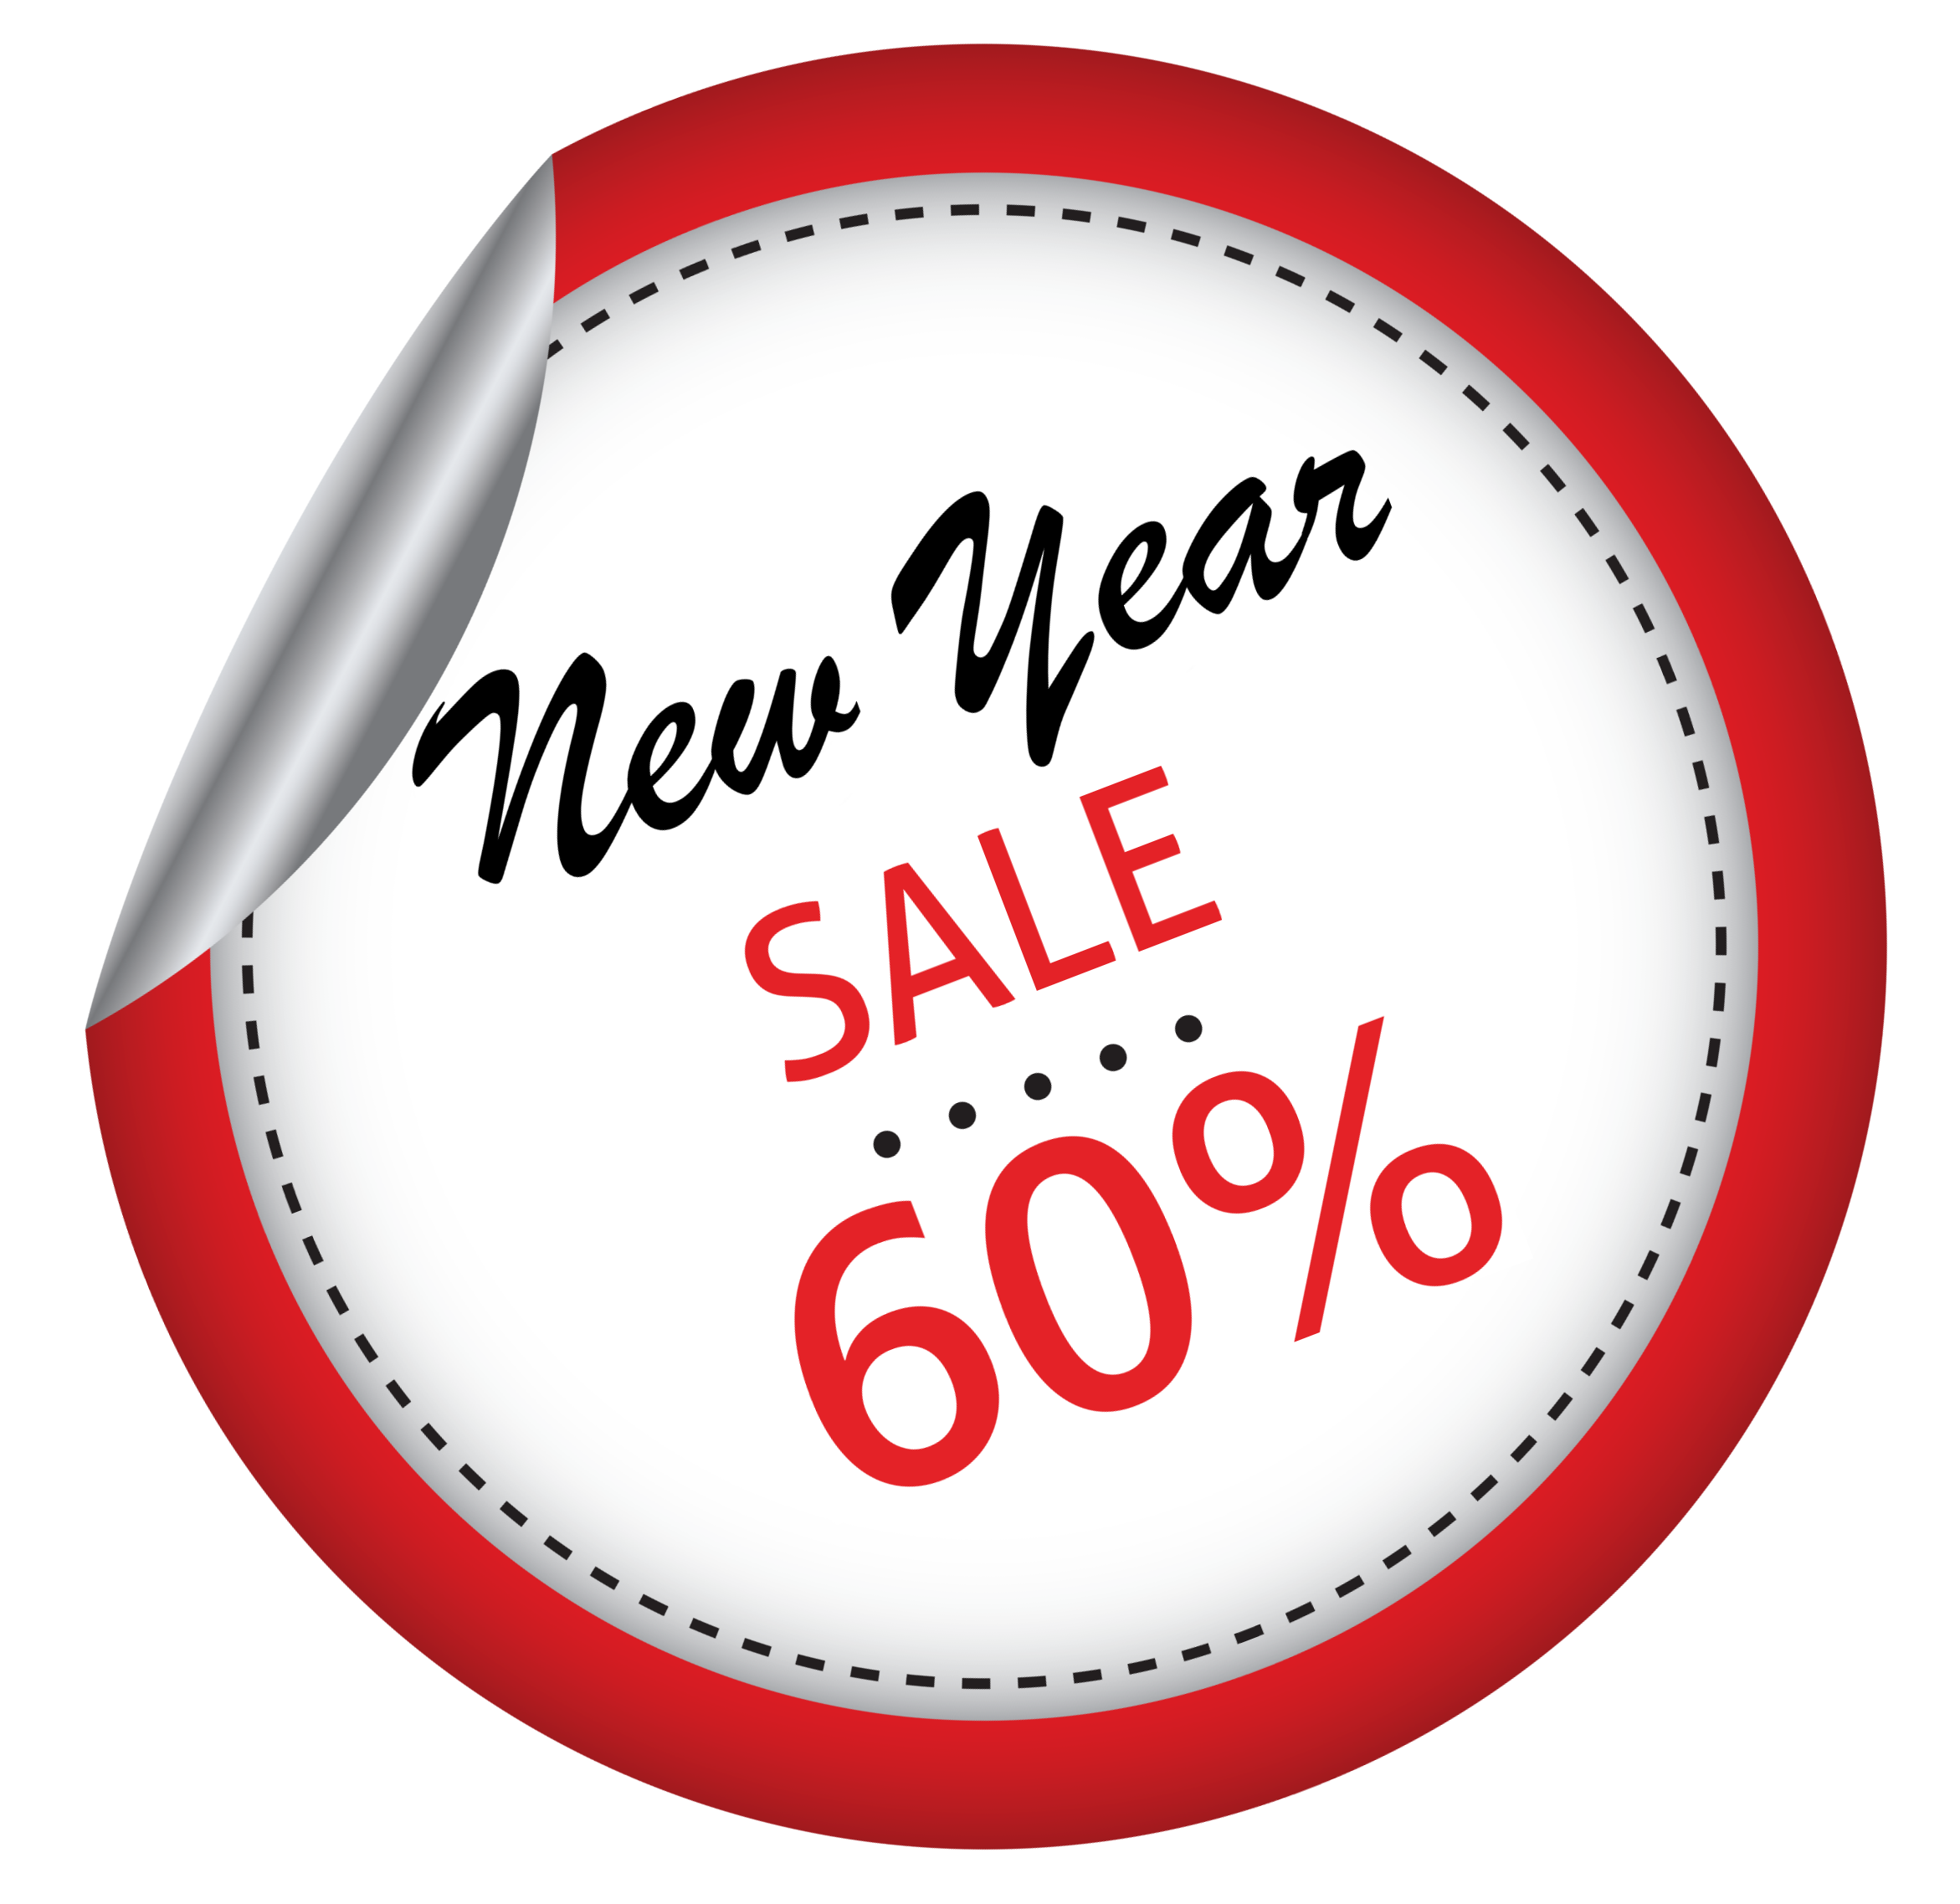 Label for new year sale